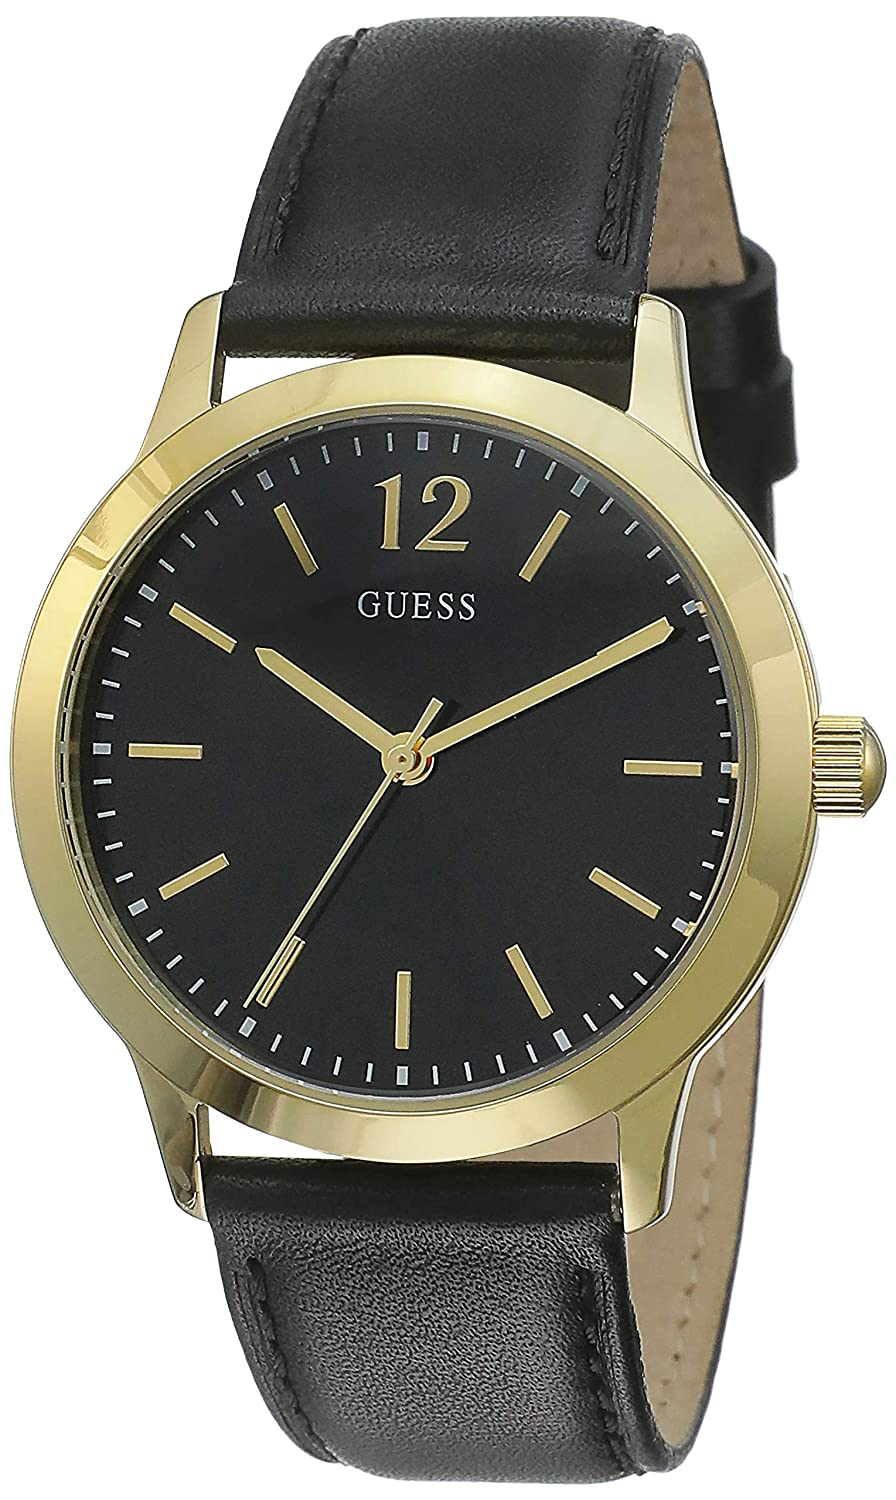 guess - GUESS WATCHES GENTS EXCHANGE W0922G4 - W0922G4: Amazon.es: Relojes